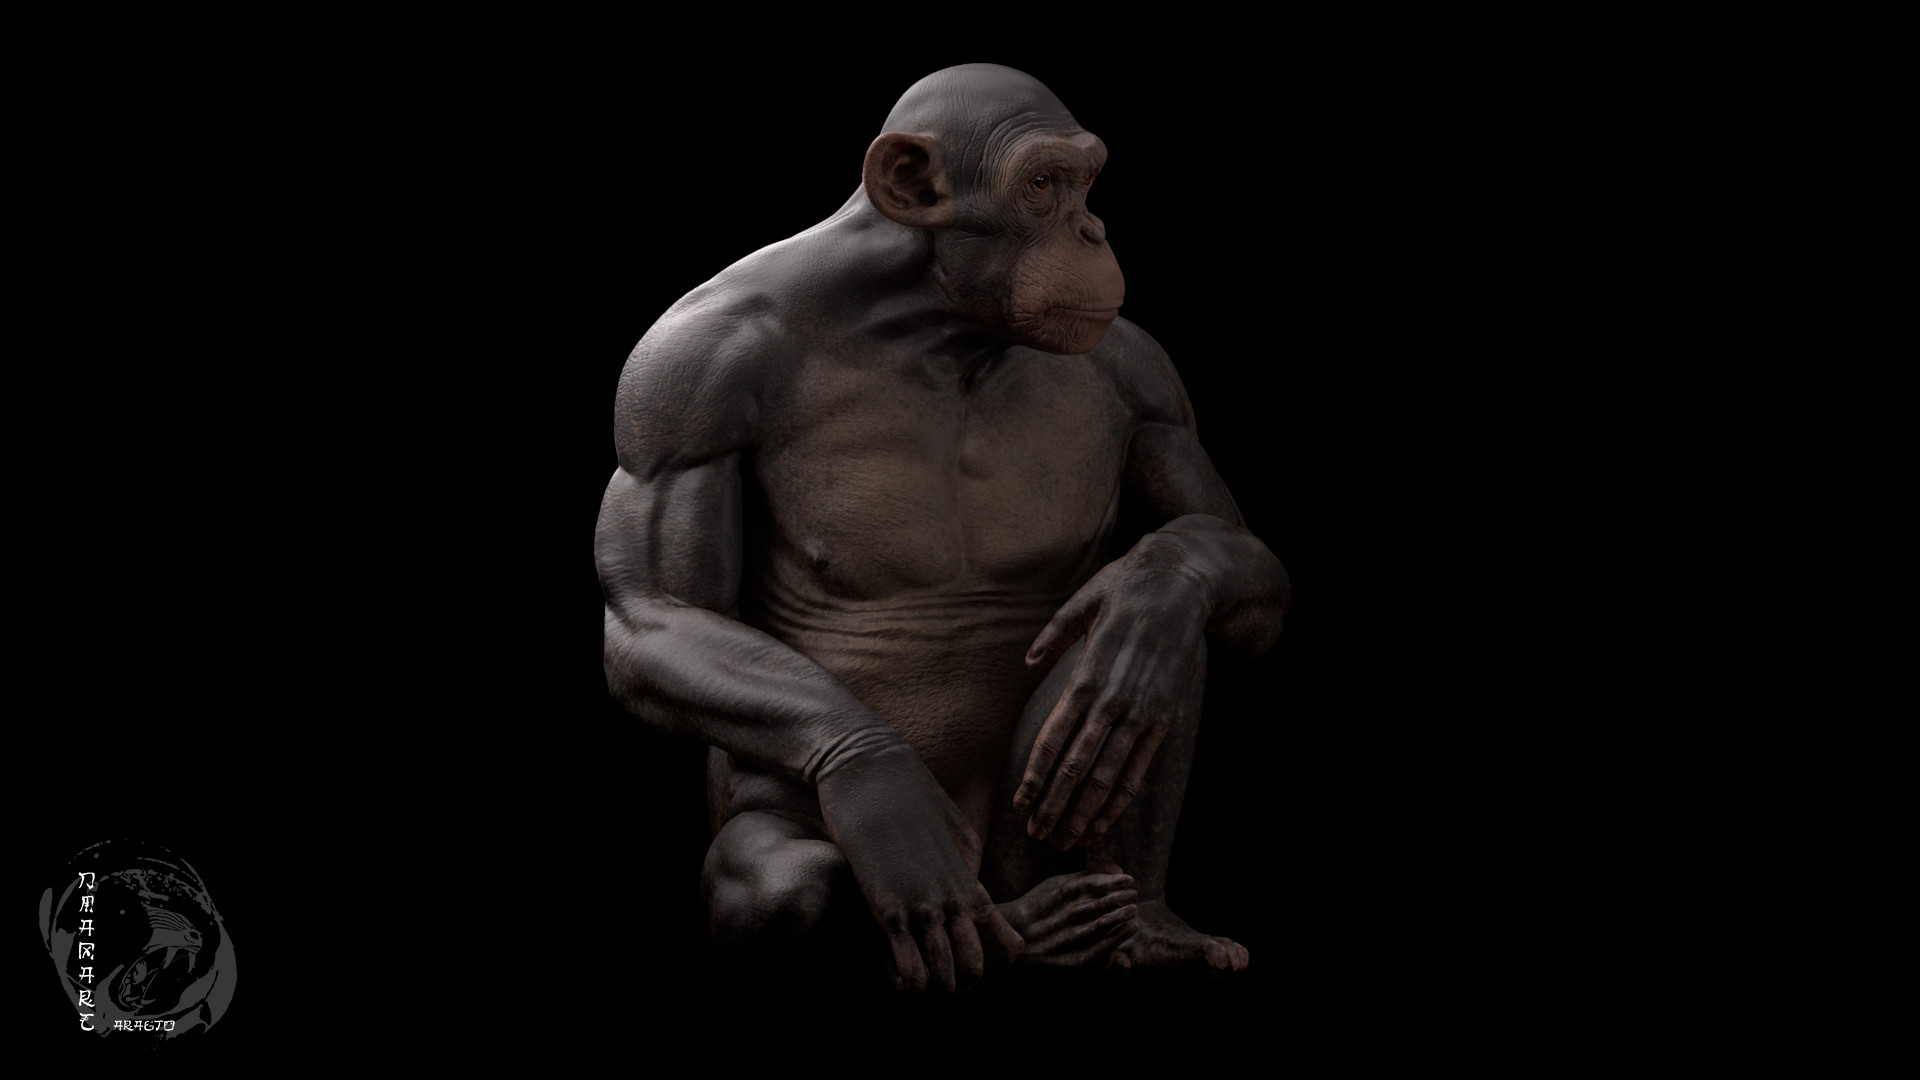 Dimax esteban araujo chimp render2